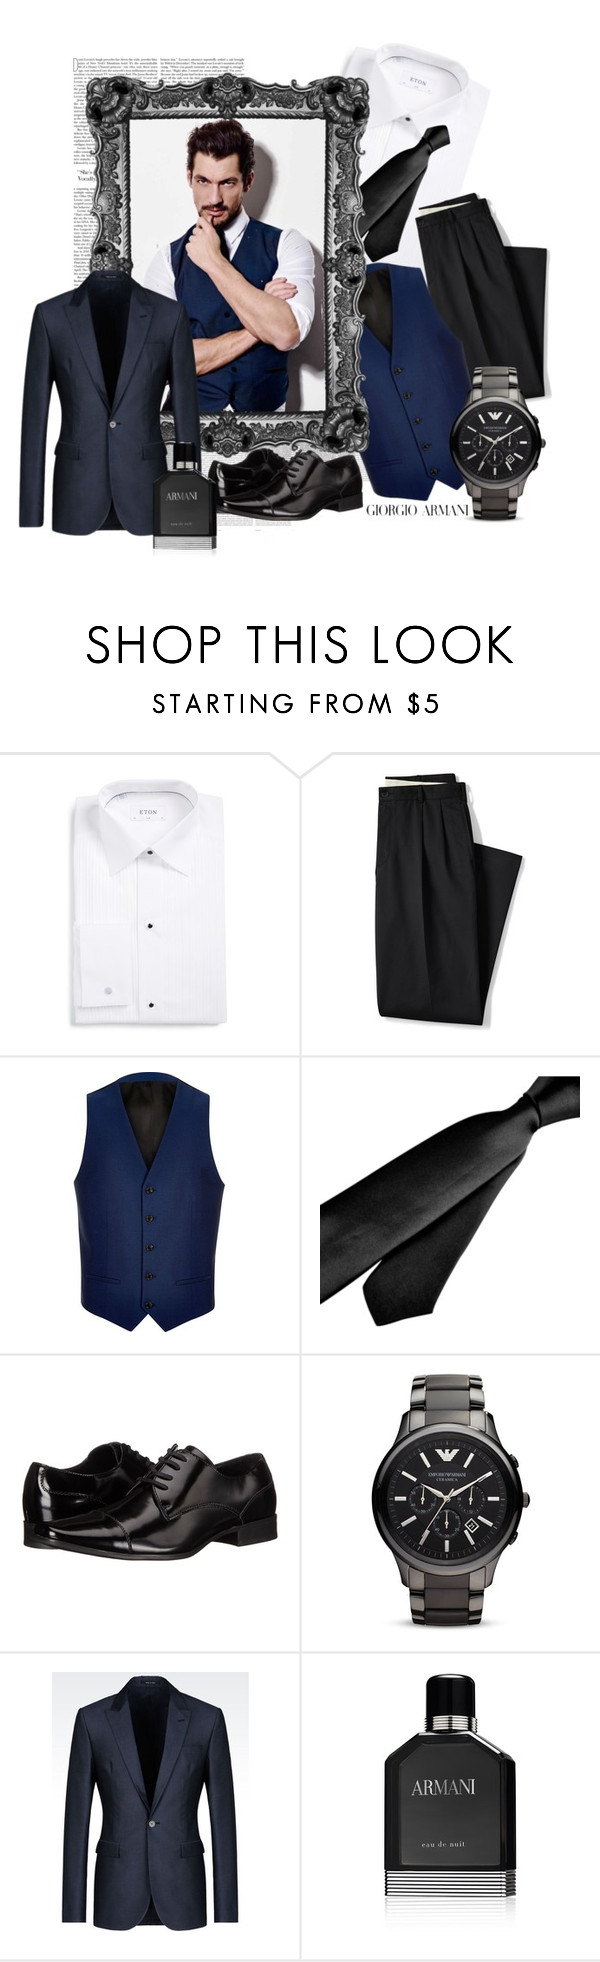 """TIMELESS"" by spells-and-skulls ❤ liked on Polyvore featuring ETON, Lands' End, Oris, River Island, Zodaca, Calvin Klein, Emporio Armani, Giorgio Armani, Armani Beauty and men's fashion"